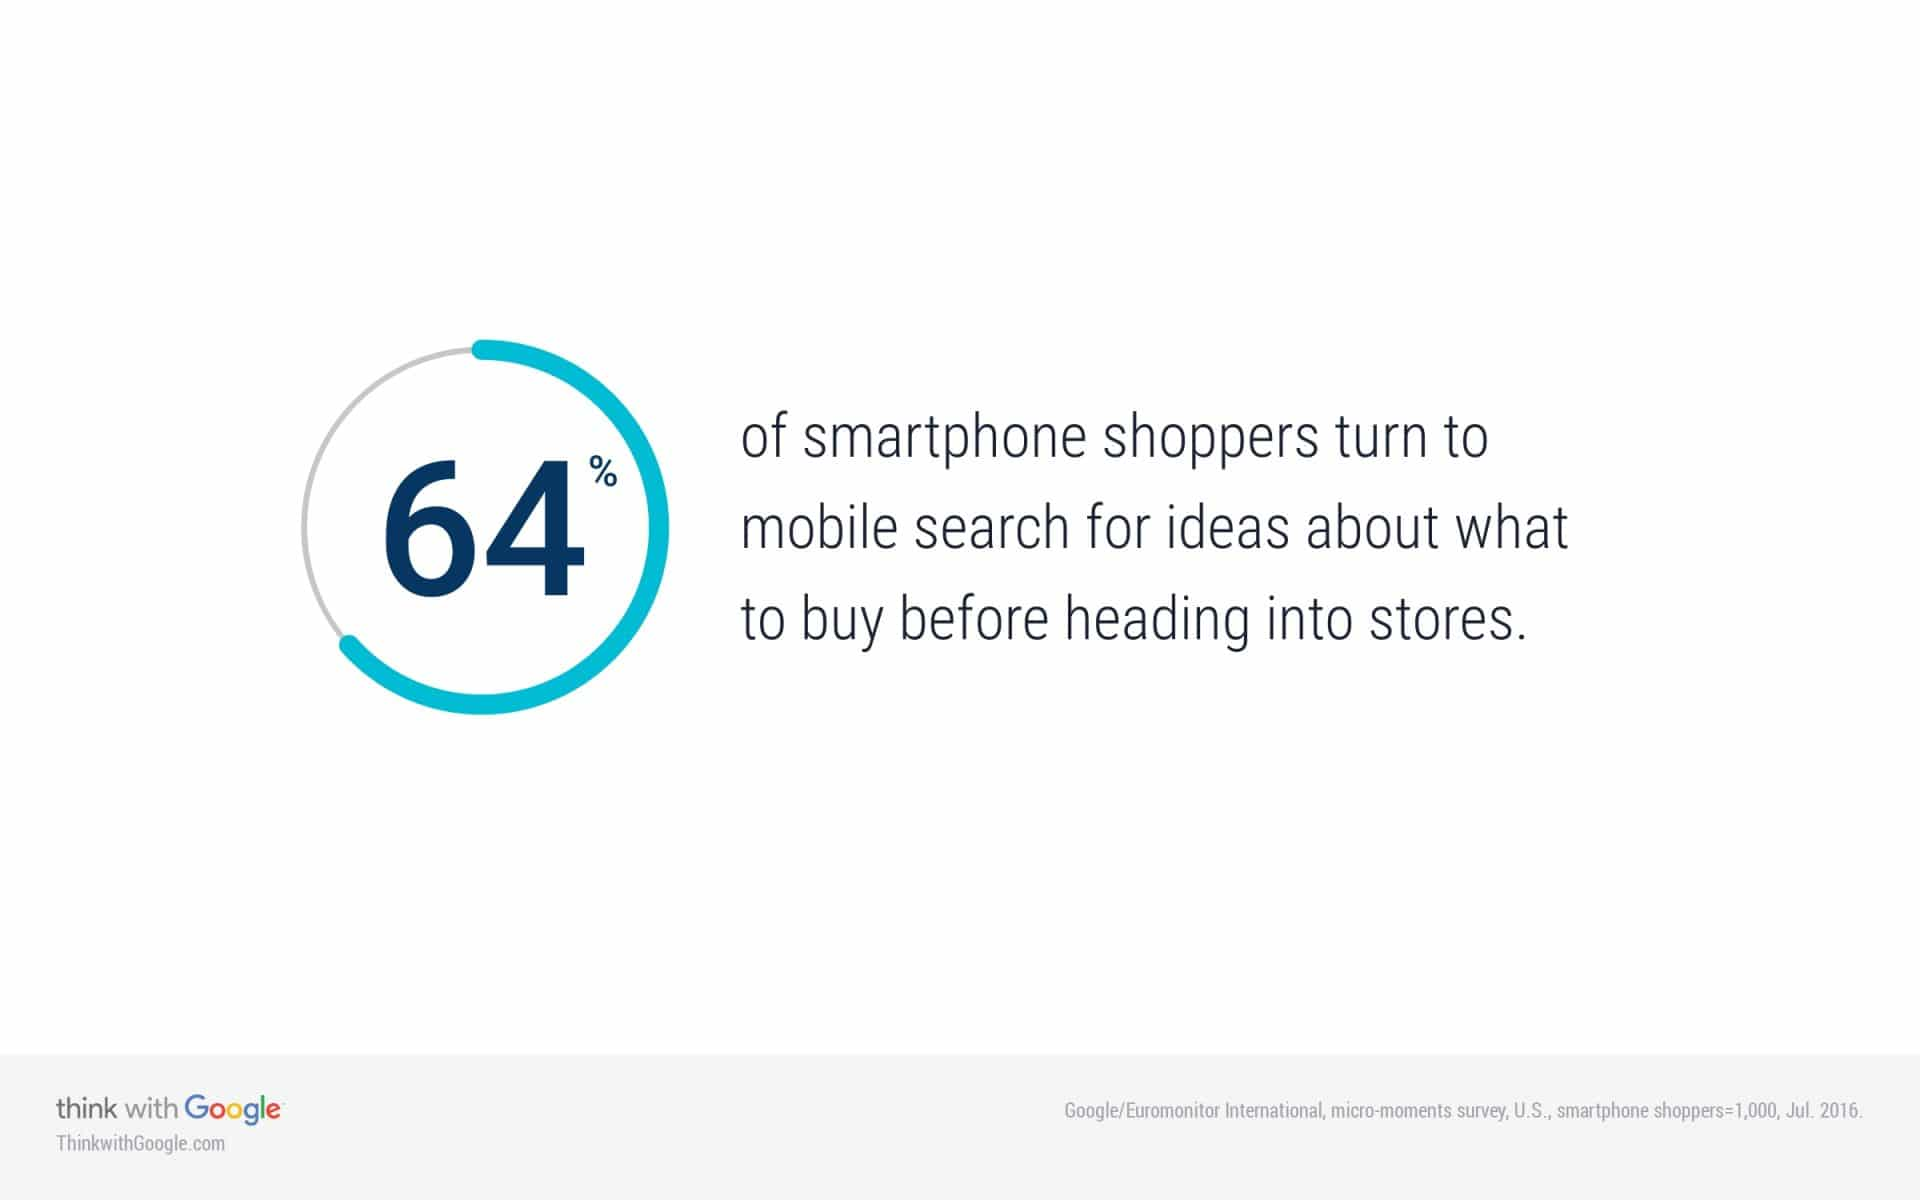 64% of smartphone users search before buying in stores.